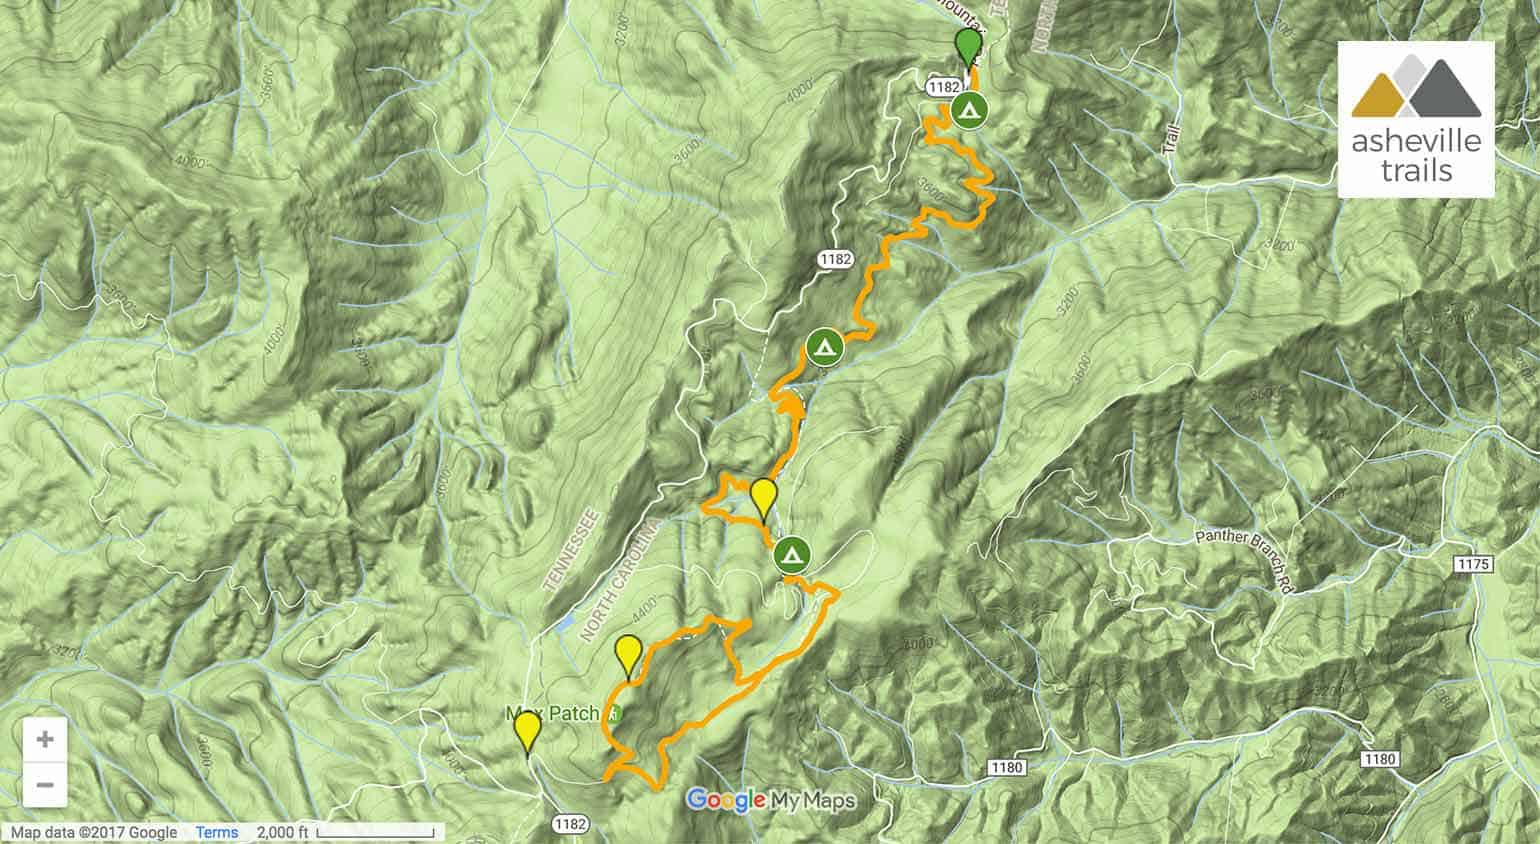 Appalachian Trail: Lemon Gap to Max Patch Mountain on map of florida, mount mitchell, shenandoah national park, map of university heights, blue ridge mountains, pacific crest trail, map of anna ruby falls, map of standing stone trail, skyline drive, great smoky mountains national park, map of ozark highlands trail, north country trail, clingmans dome, appalachian mountains, map of natchez trace trail, mount rogers, map of va creeper trail, brasstown bald, map of hunting, mount katahdin, map of national scenic trails, map of finger lakes trail, great smoky mountains, map of appalachia, continental divide trail, map of appalachian ohio, map of georgia, appalachian trail conservancy, blood mountain, map of arizona trail, springer mountain, map of tanawha trail, map of cumberland trail, map of billy goat trail, map of erie canalway trail, map of civil war trails, long trail, map of ruggles mine,